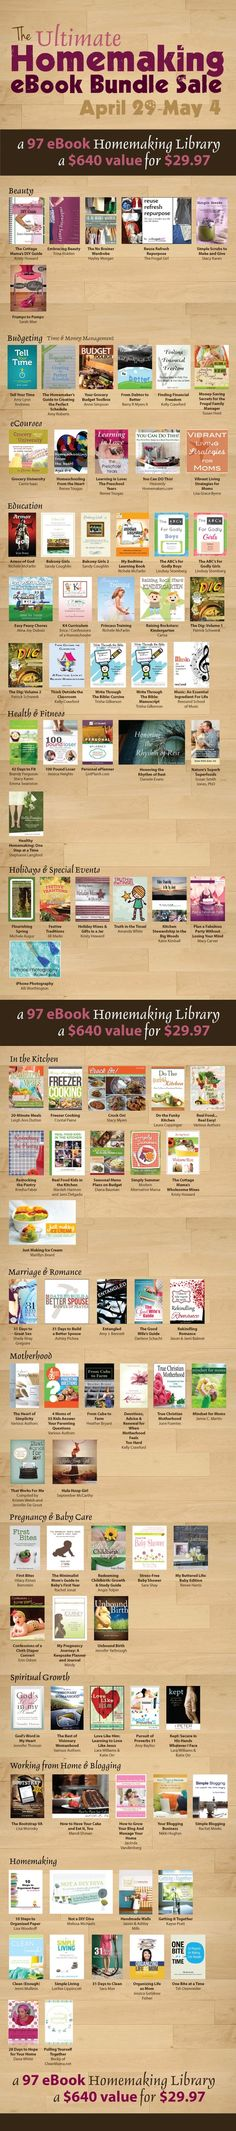 $29.97 Awesome library of 97 fabulous ebooks by @Amanda Jane @Tiffany Hegarty Oxenreider @Amy Lyons Lynn Andrews and MORE